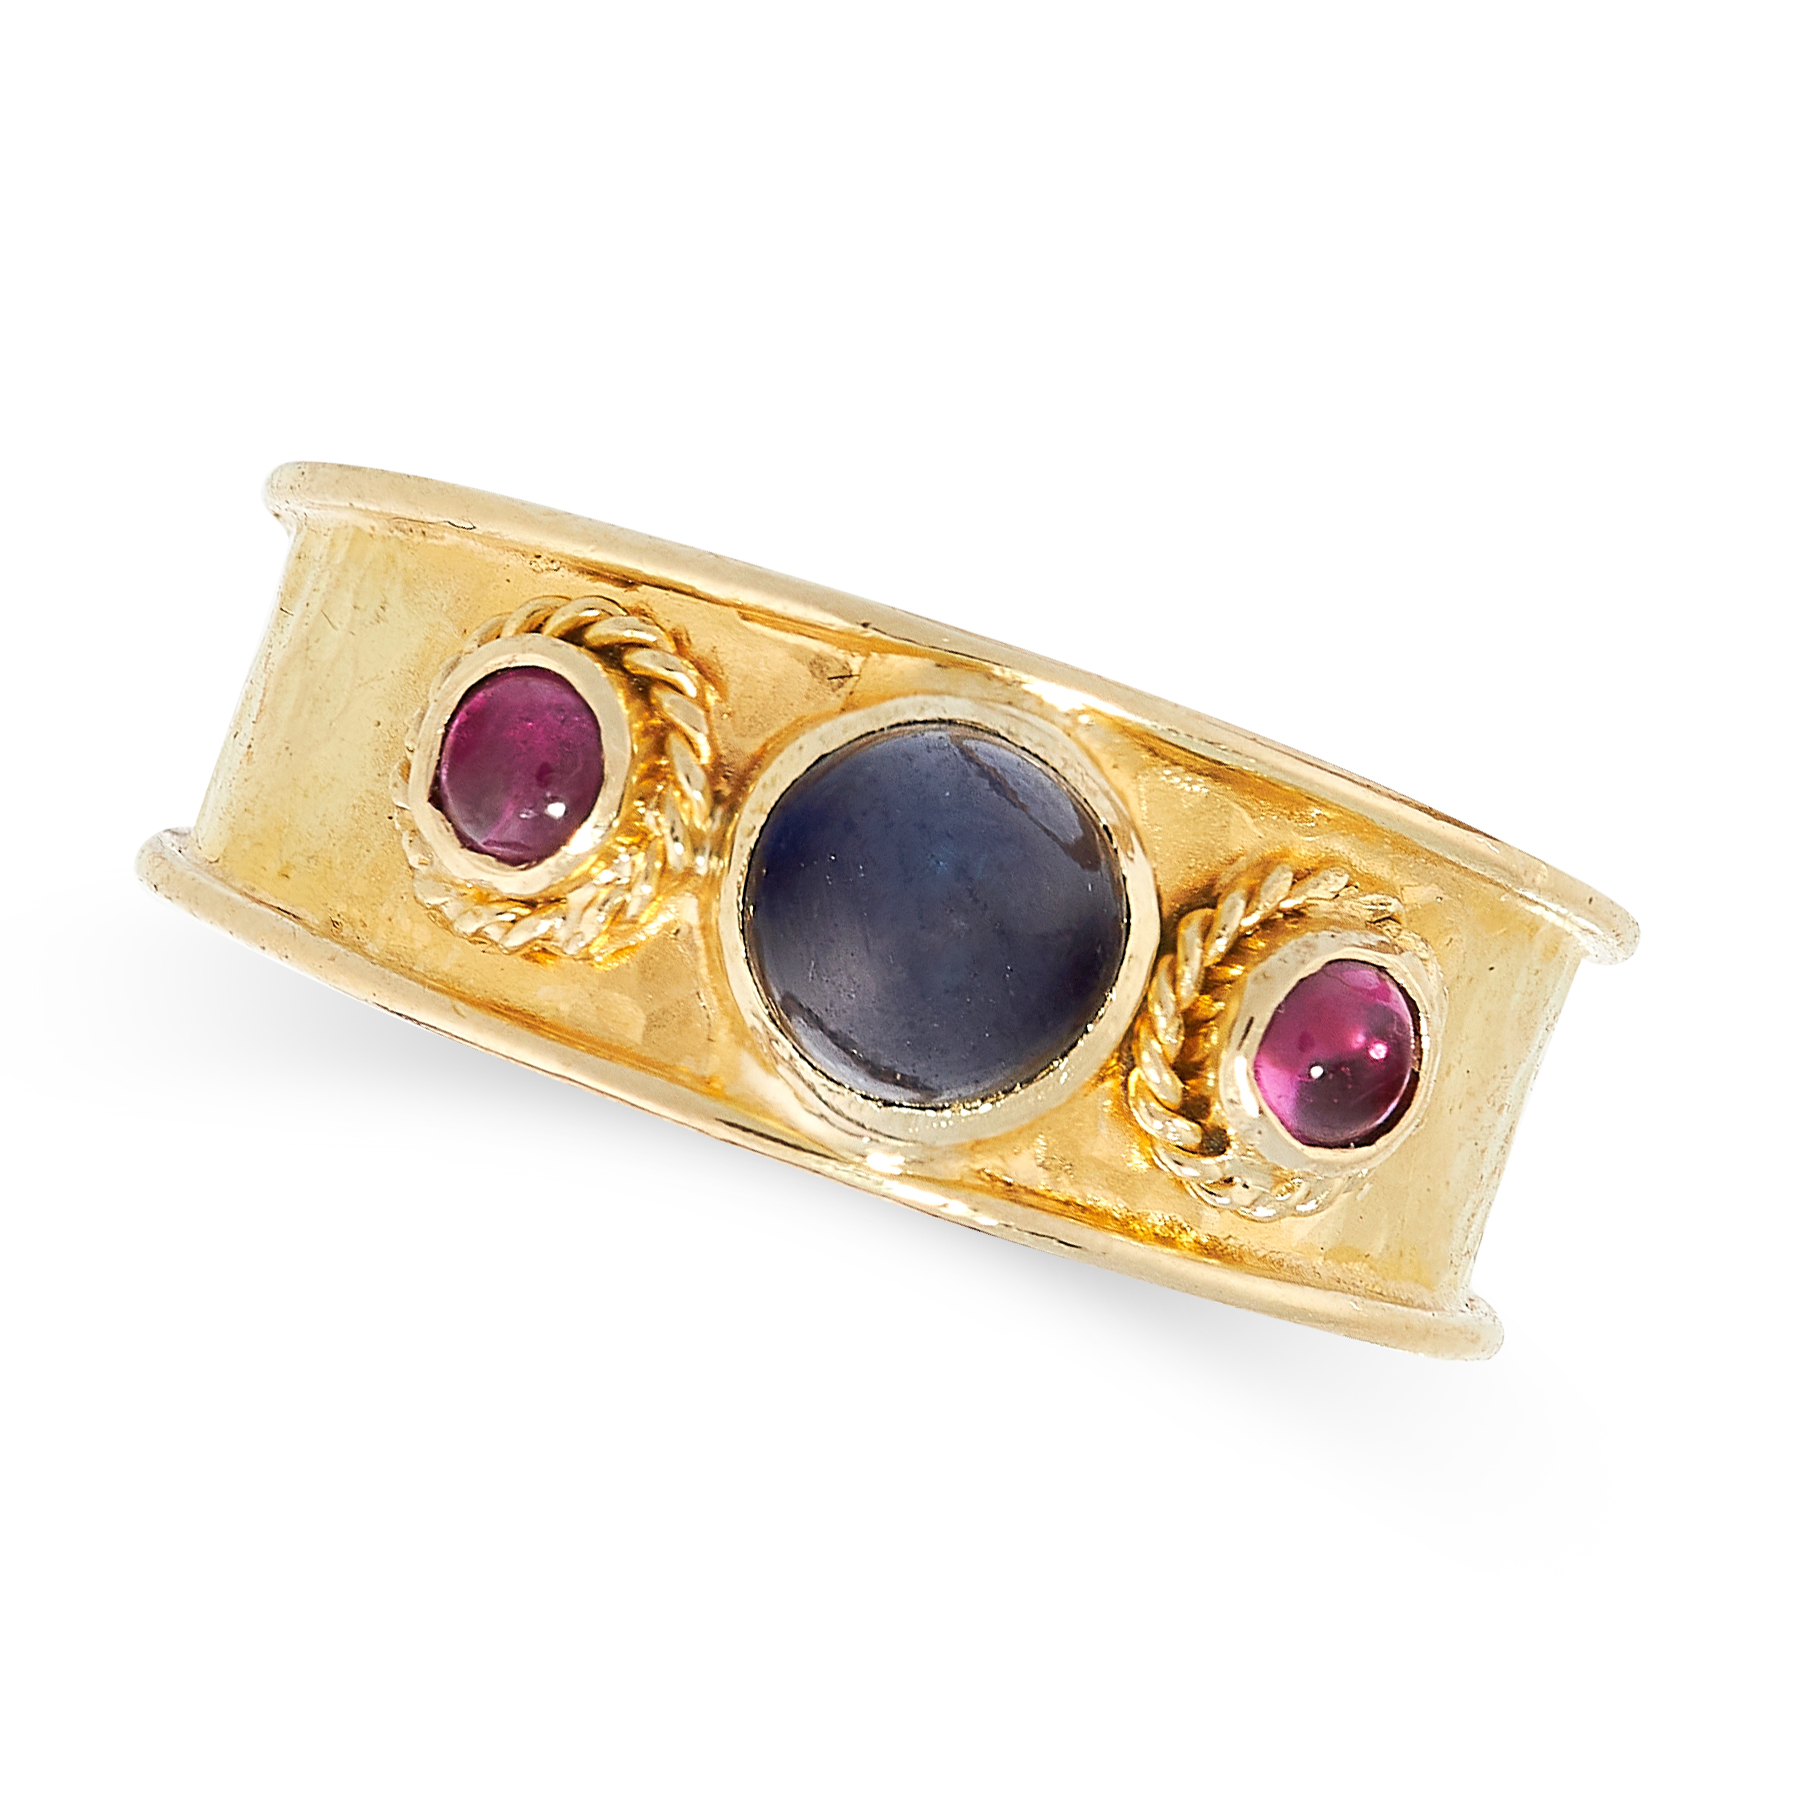 SAPPHIRE AND RUBY RING in 18ct yellow gold, the hammered gold band is set with a cabochon sapphire